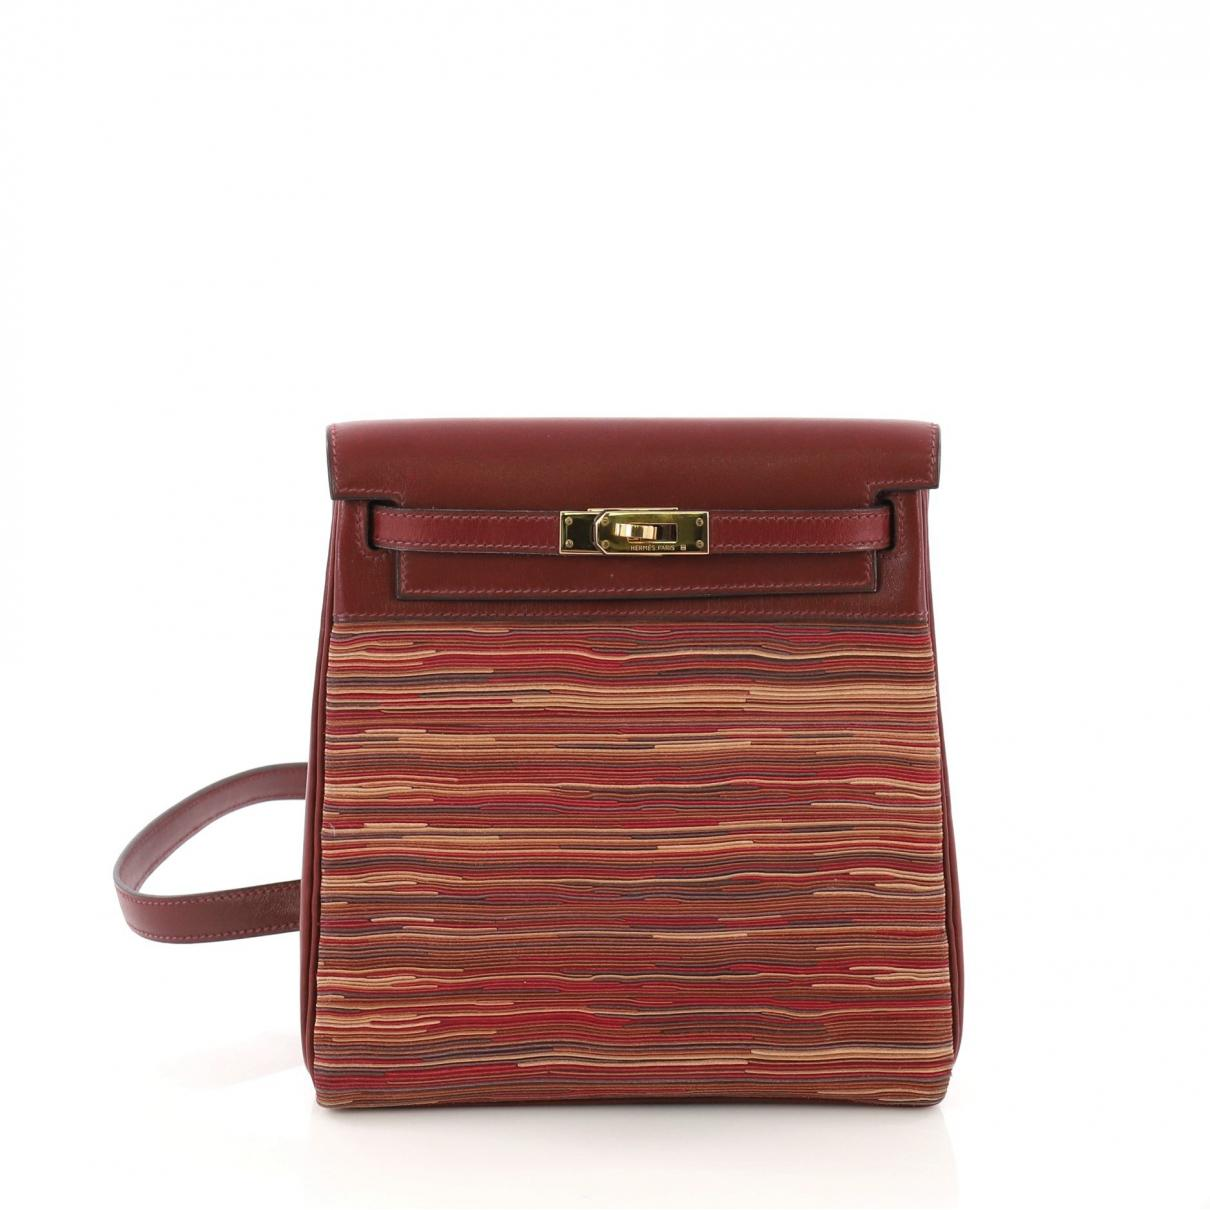 a1d366c4e690 Hermès. Women's Pre-owned Vintage Red Cloth Backpacks. £5,475 From Vestiaire  Collective